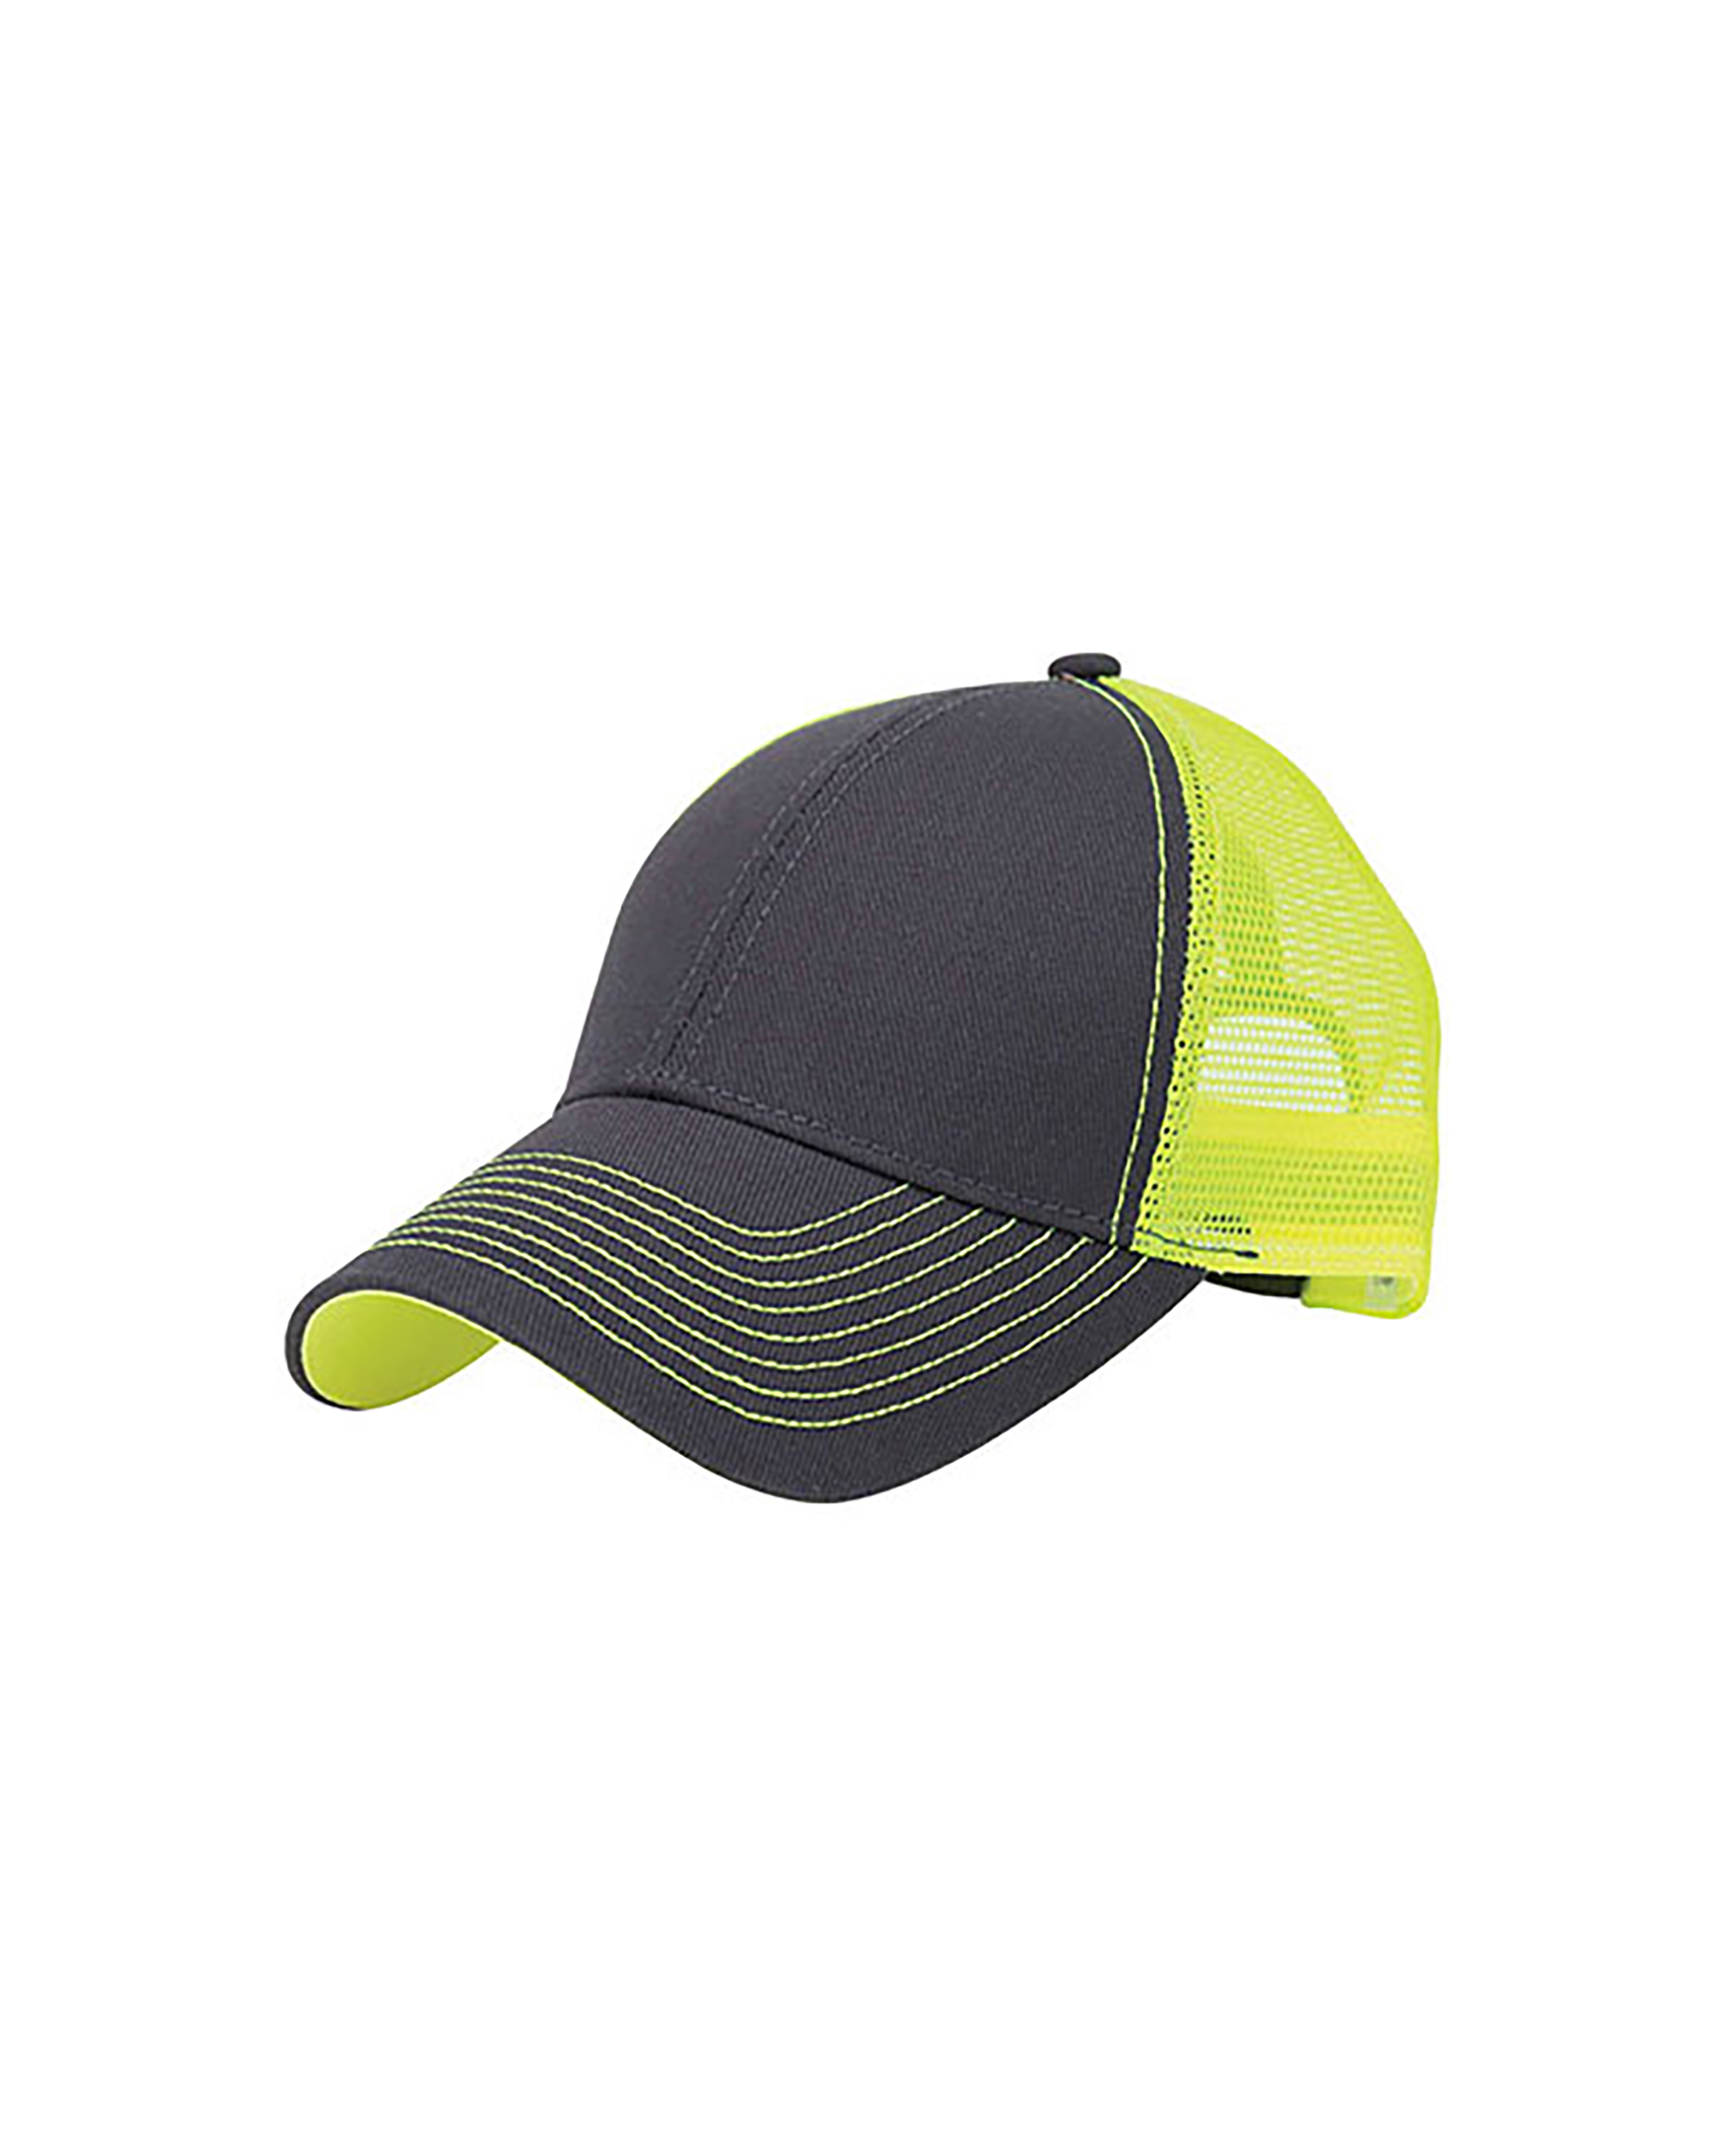 Mega Cap 7641B - Heavy Cotton Twill Trucker Cap w/Neon ...